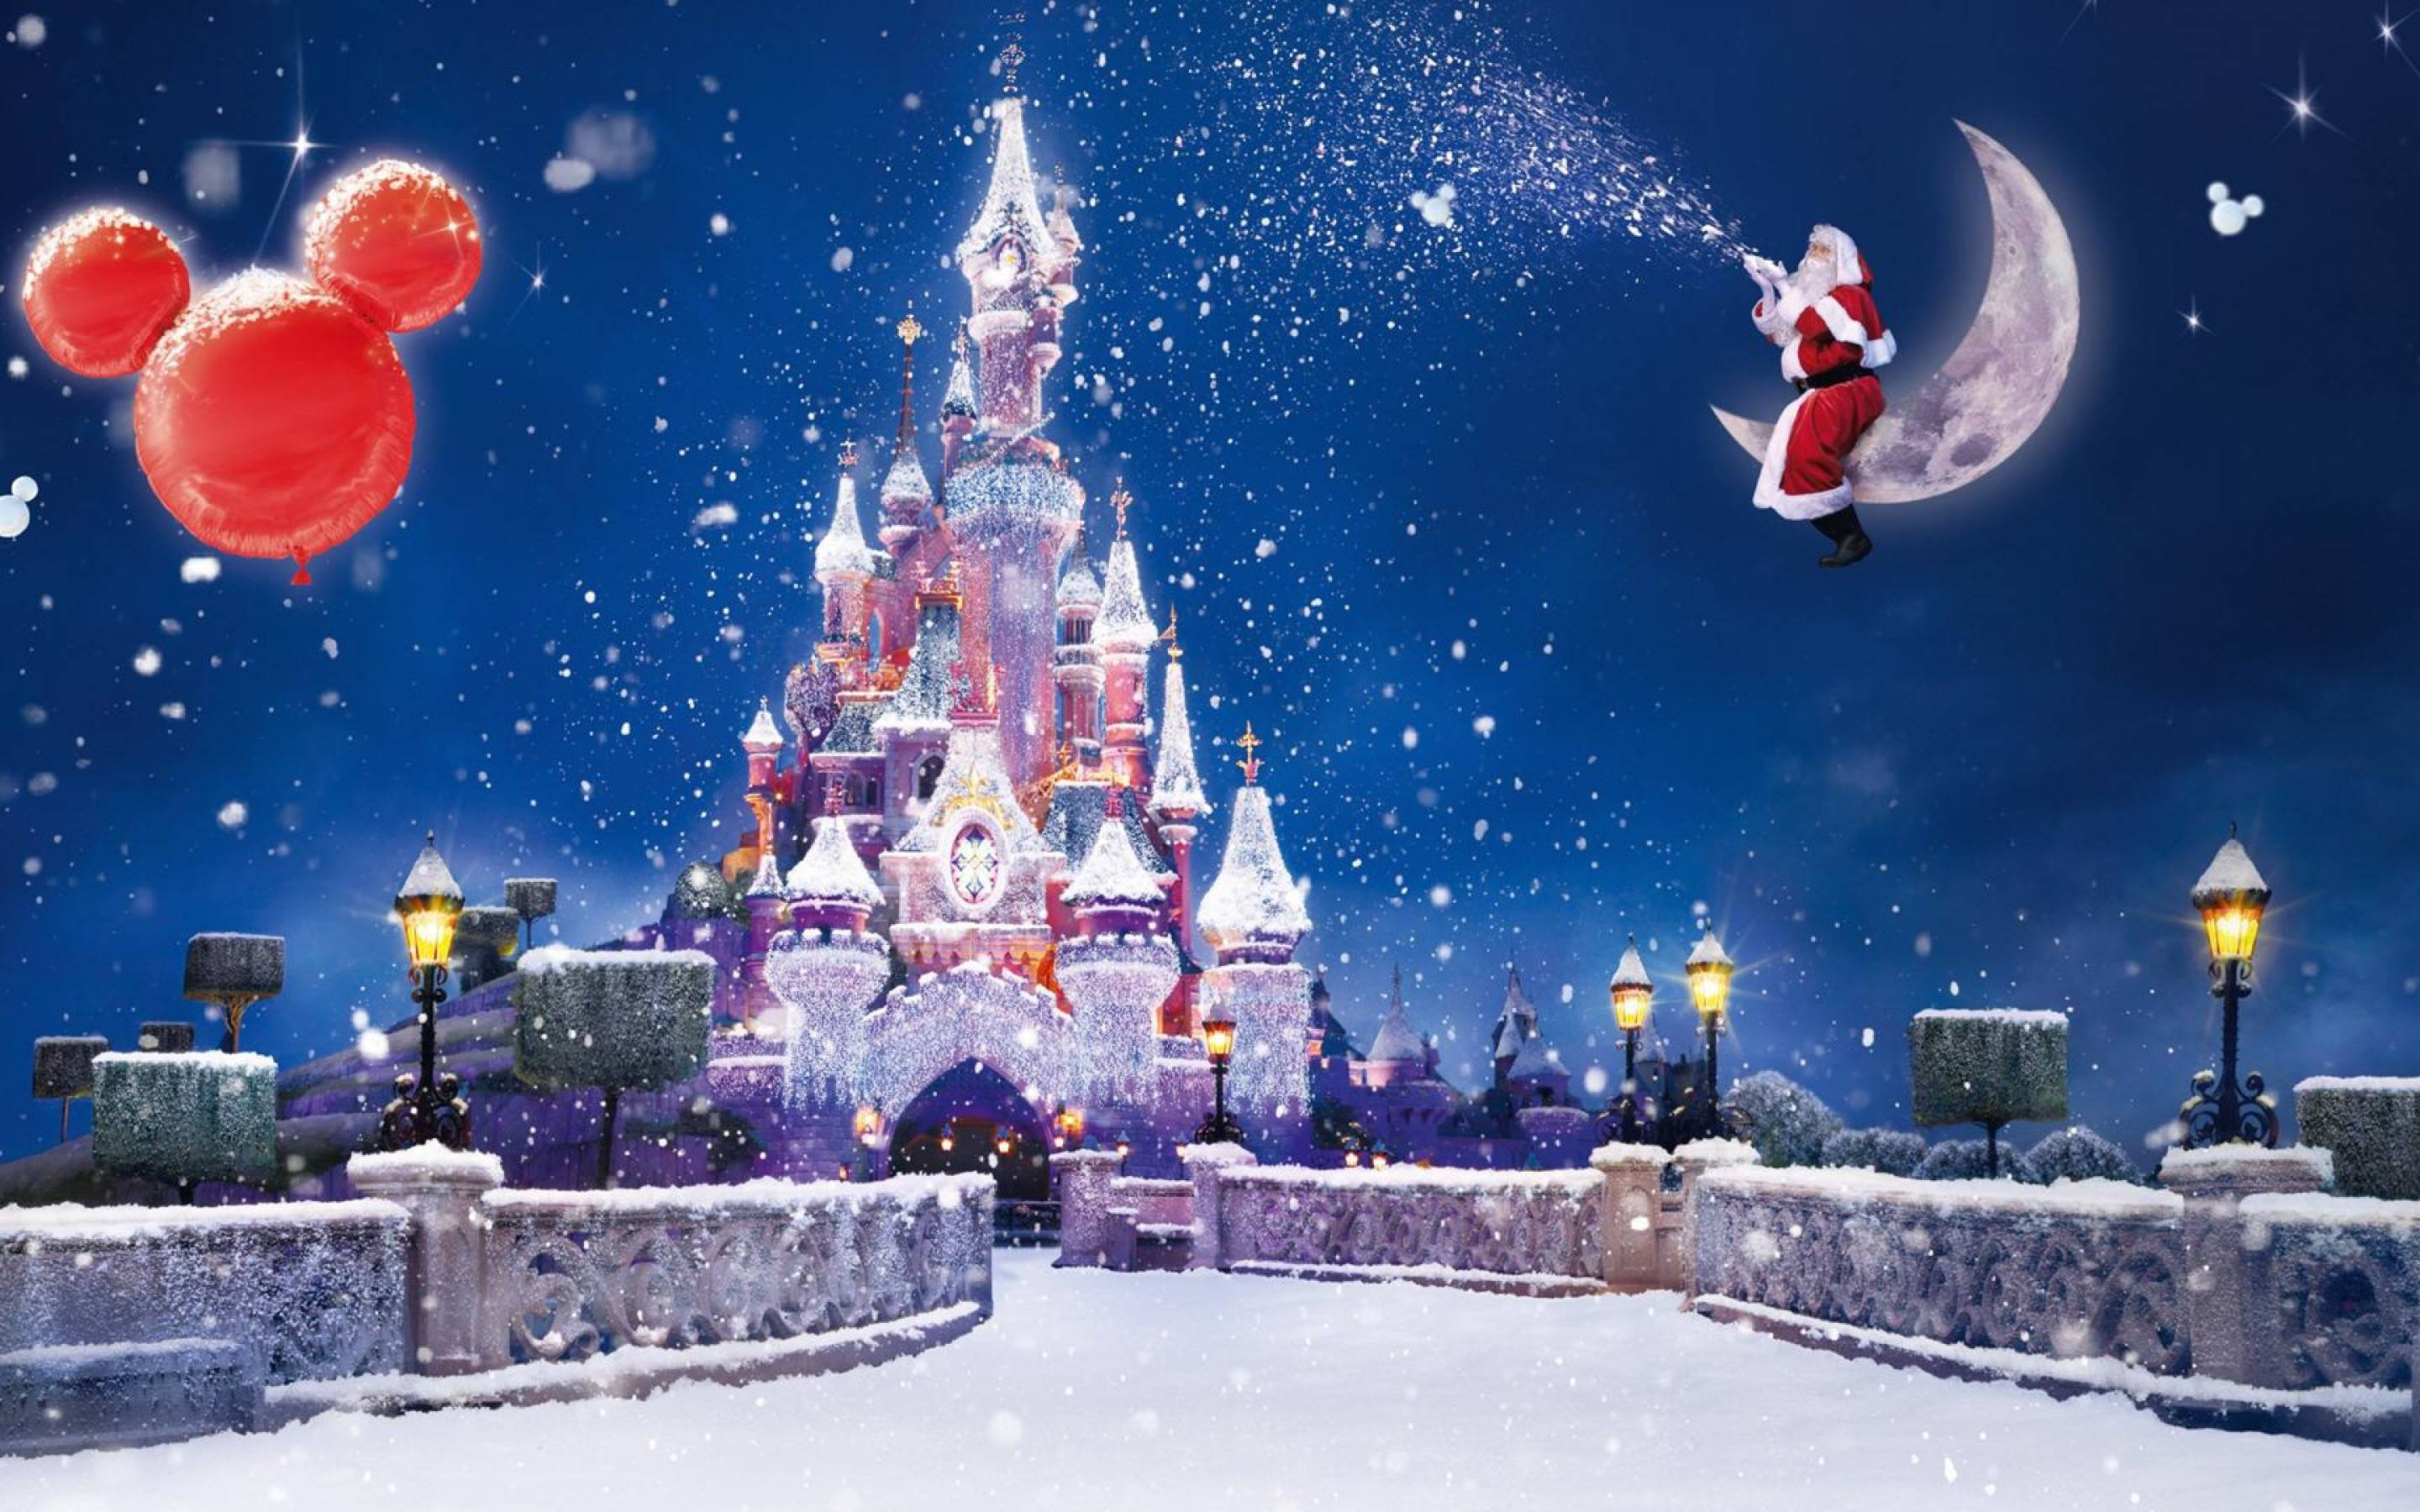 Disney Christmas Wallpapers Hd Pixelstalk Net